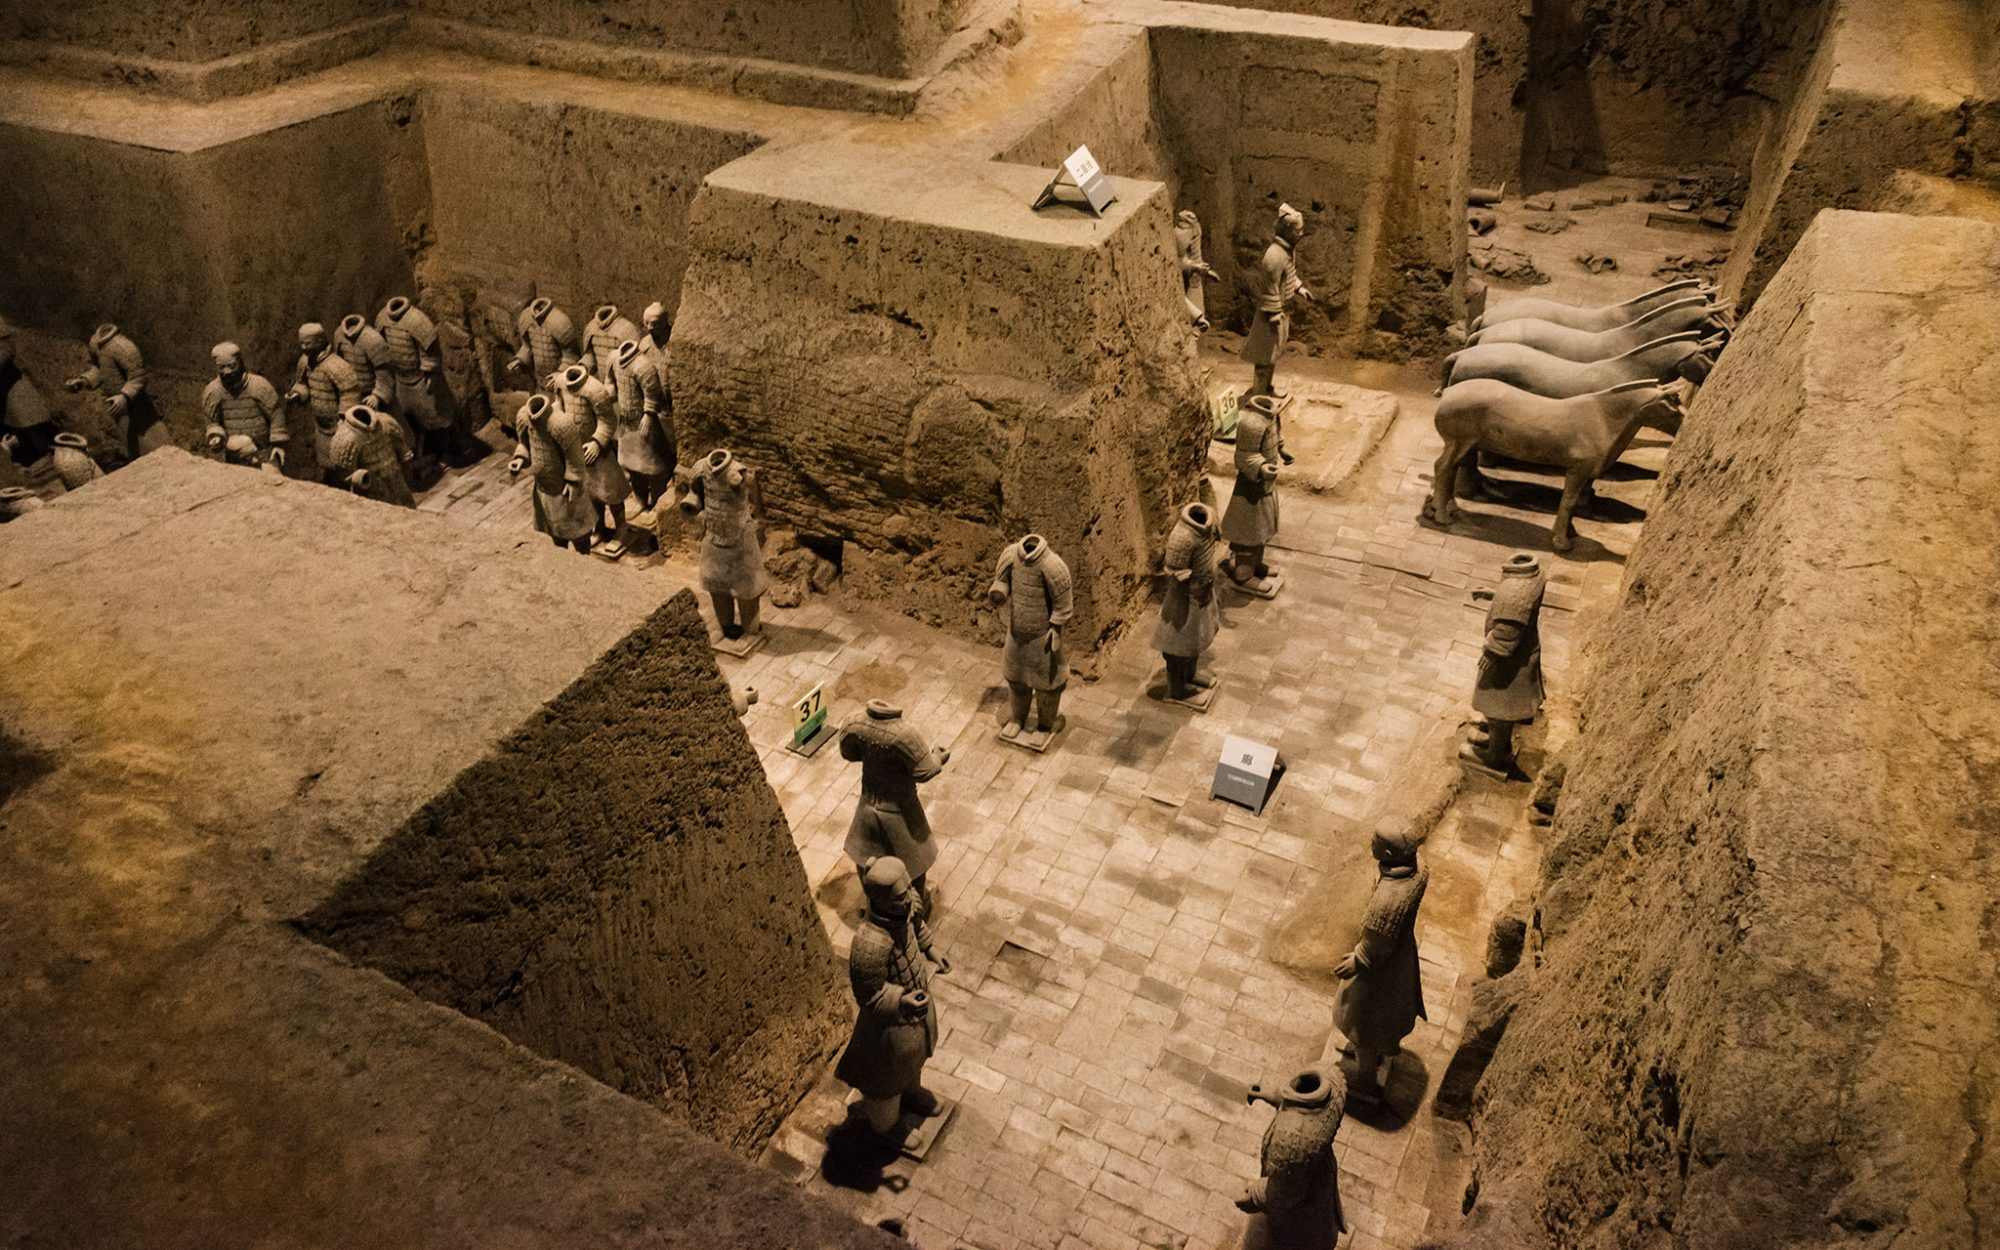 Coolest Underground Wonders: World's Most-Visited Ancient Ruins: Mausoleum of the First Qin Emperor, China